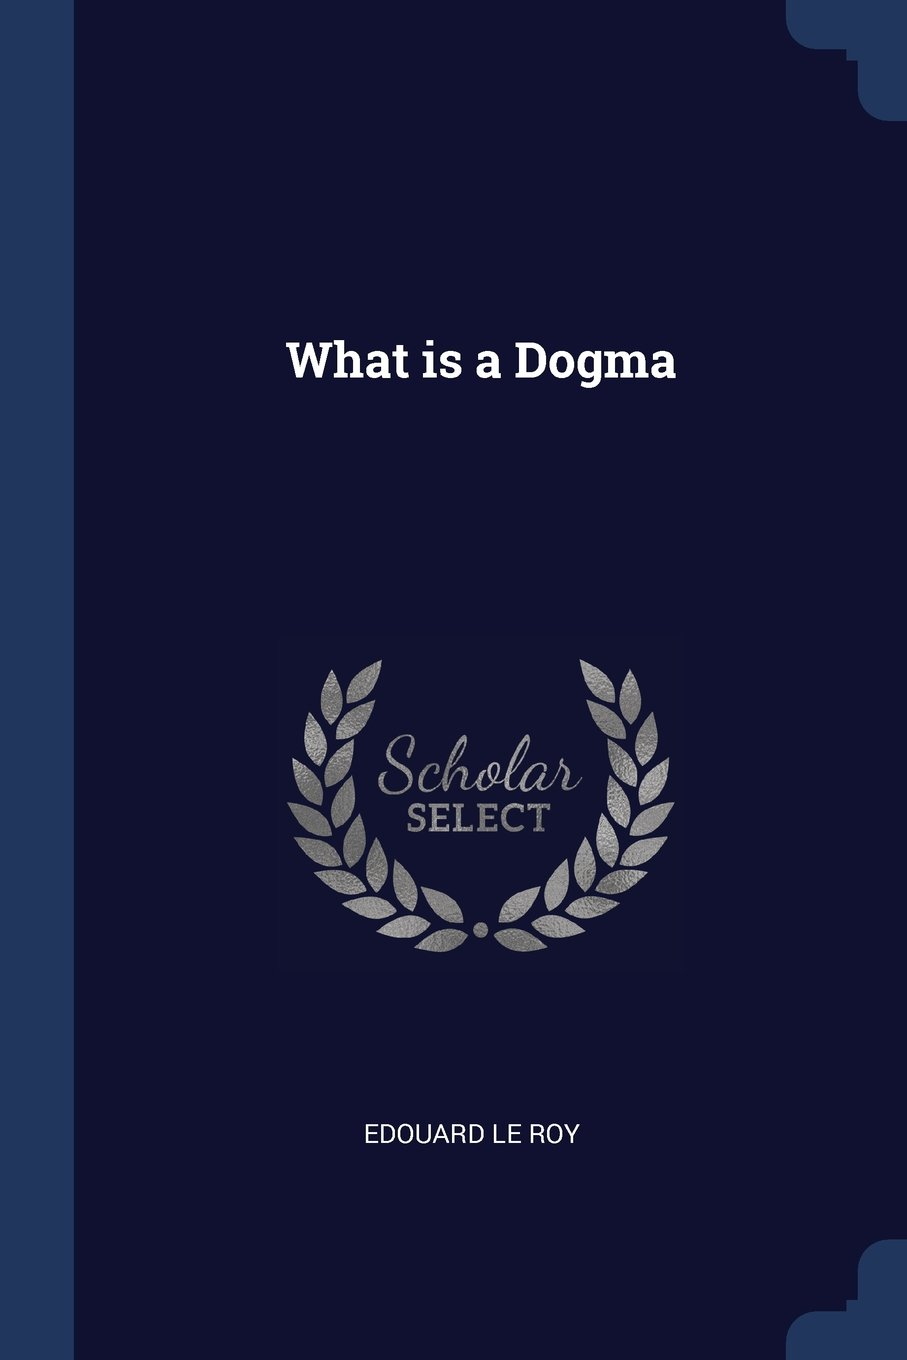 What is dogma 9